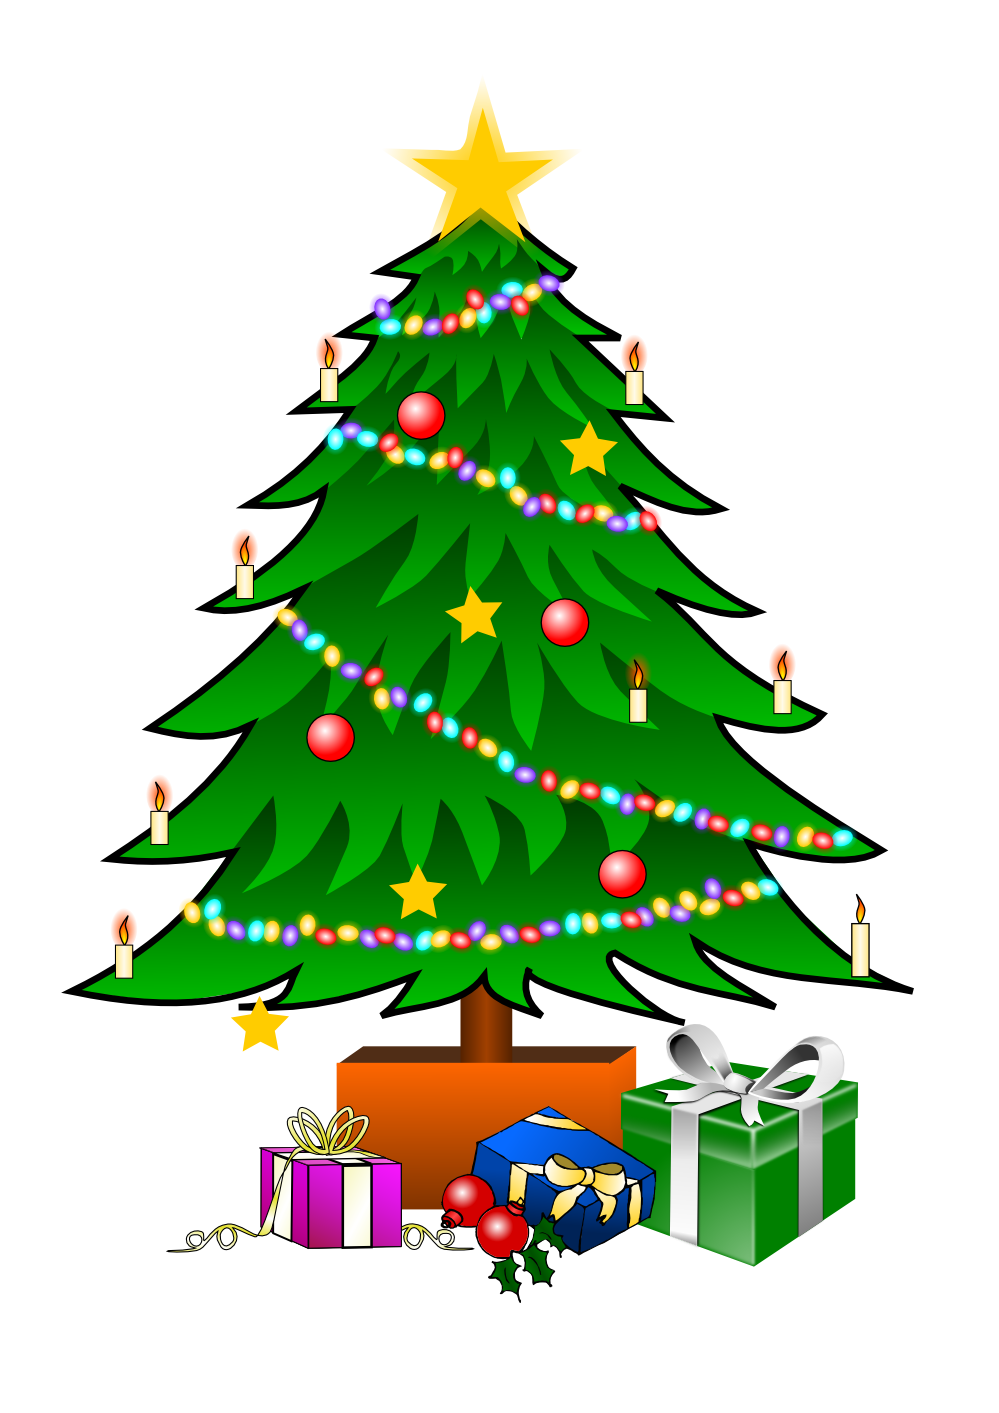 Transparent christmas lights clipart vector transparent stock This nice Christmas tree with presents clip art can be used for ... vector transparent stock